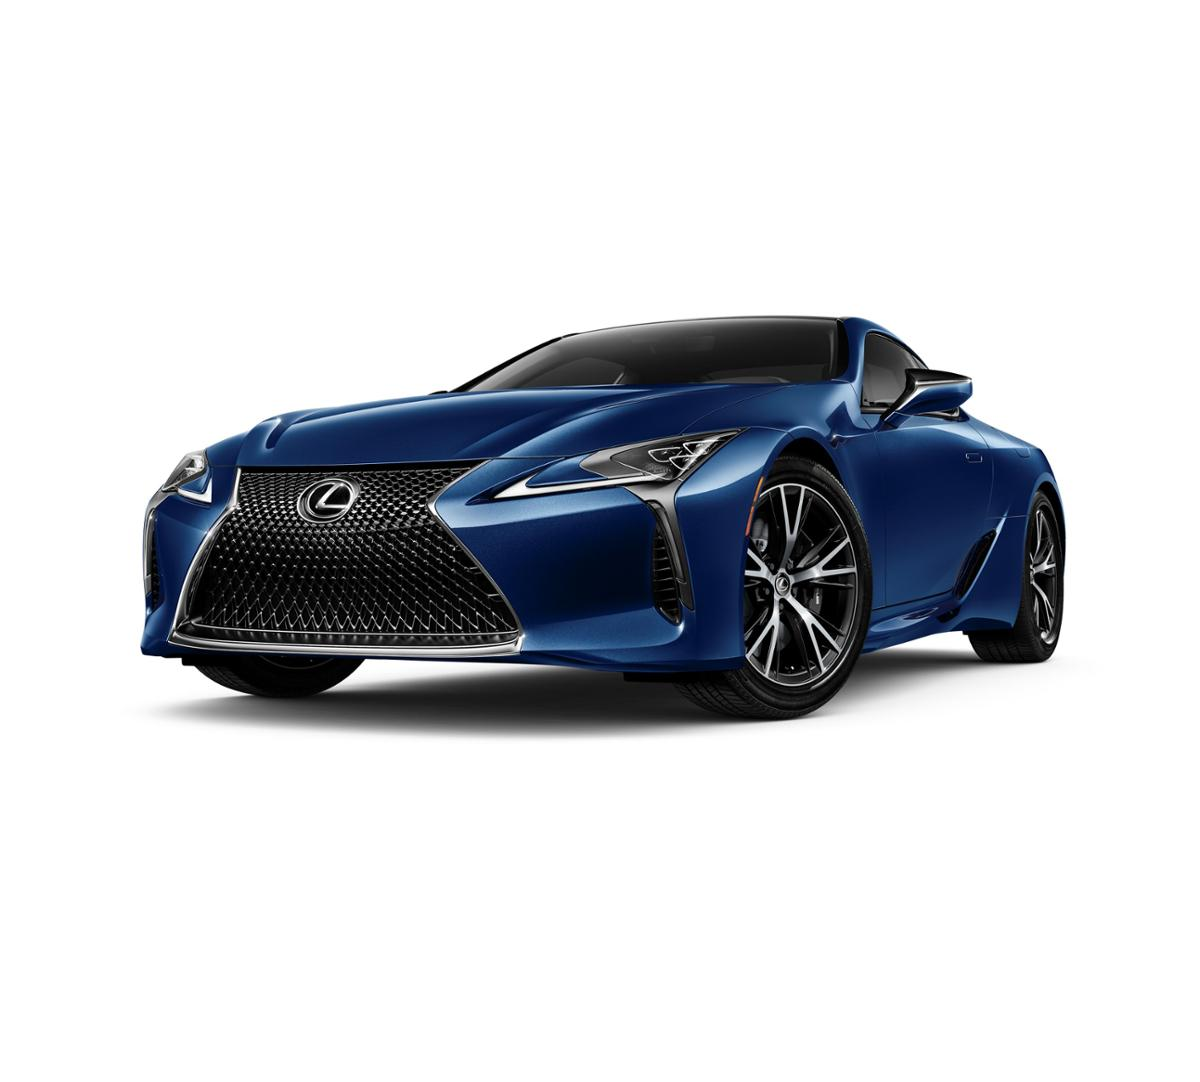 2018 Lexus LC 500 Vehicle Photo in Santa Monica, CA 90404